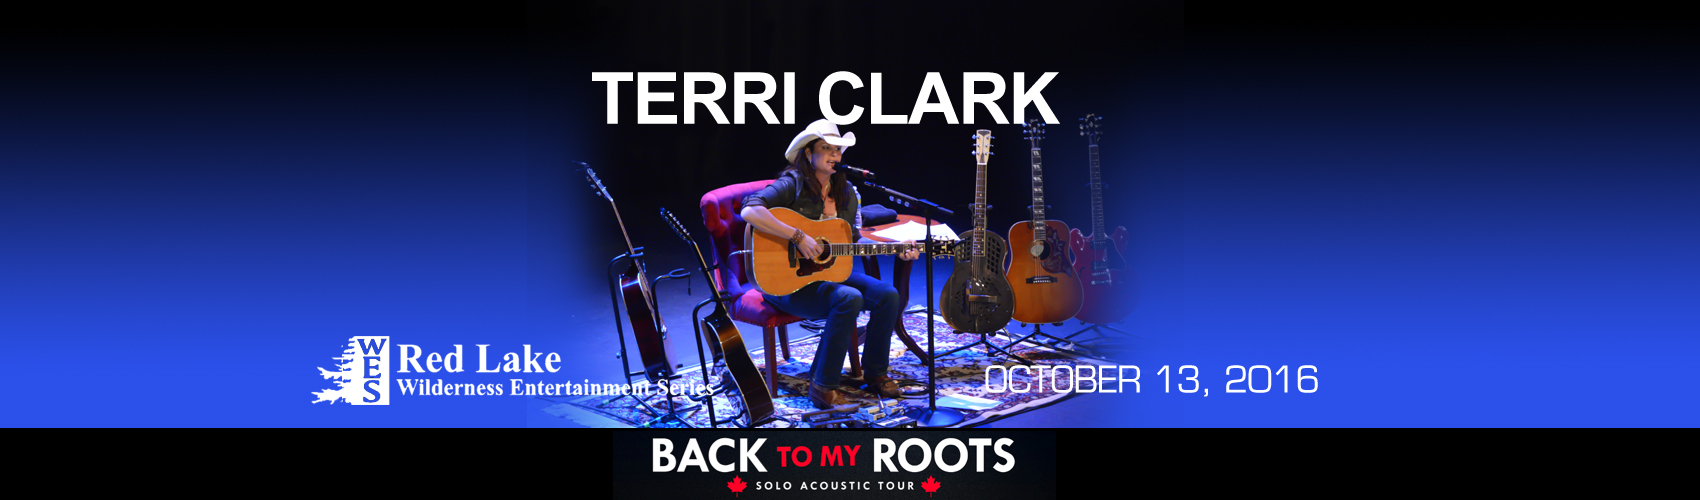 2016-Slider-TERRI-CLARK-UPDATE